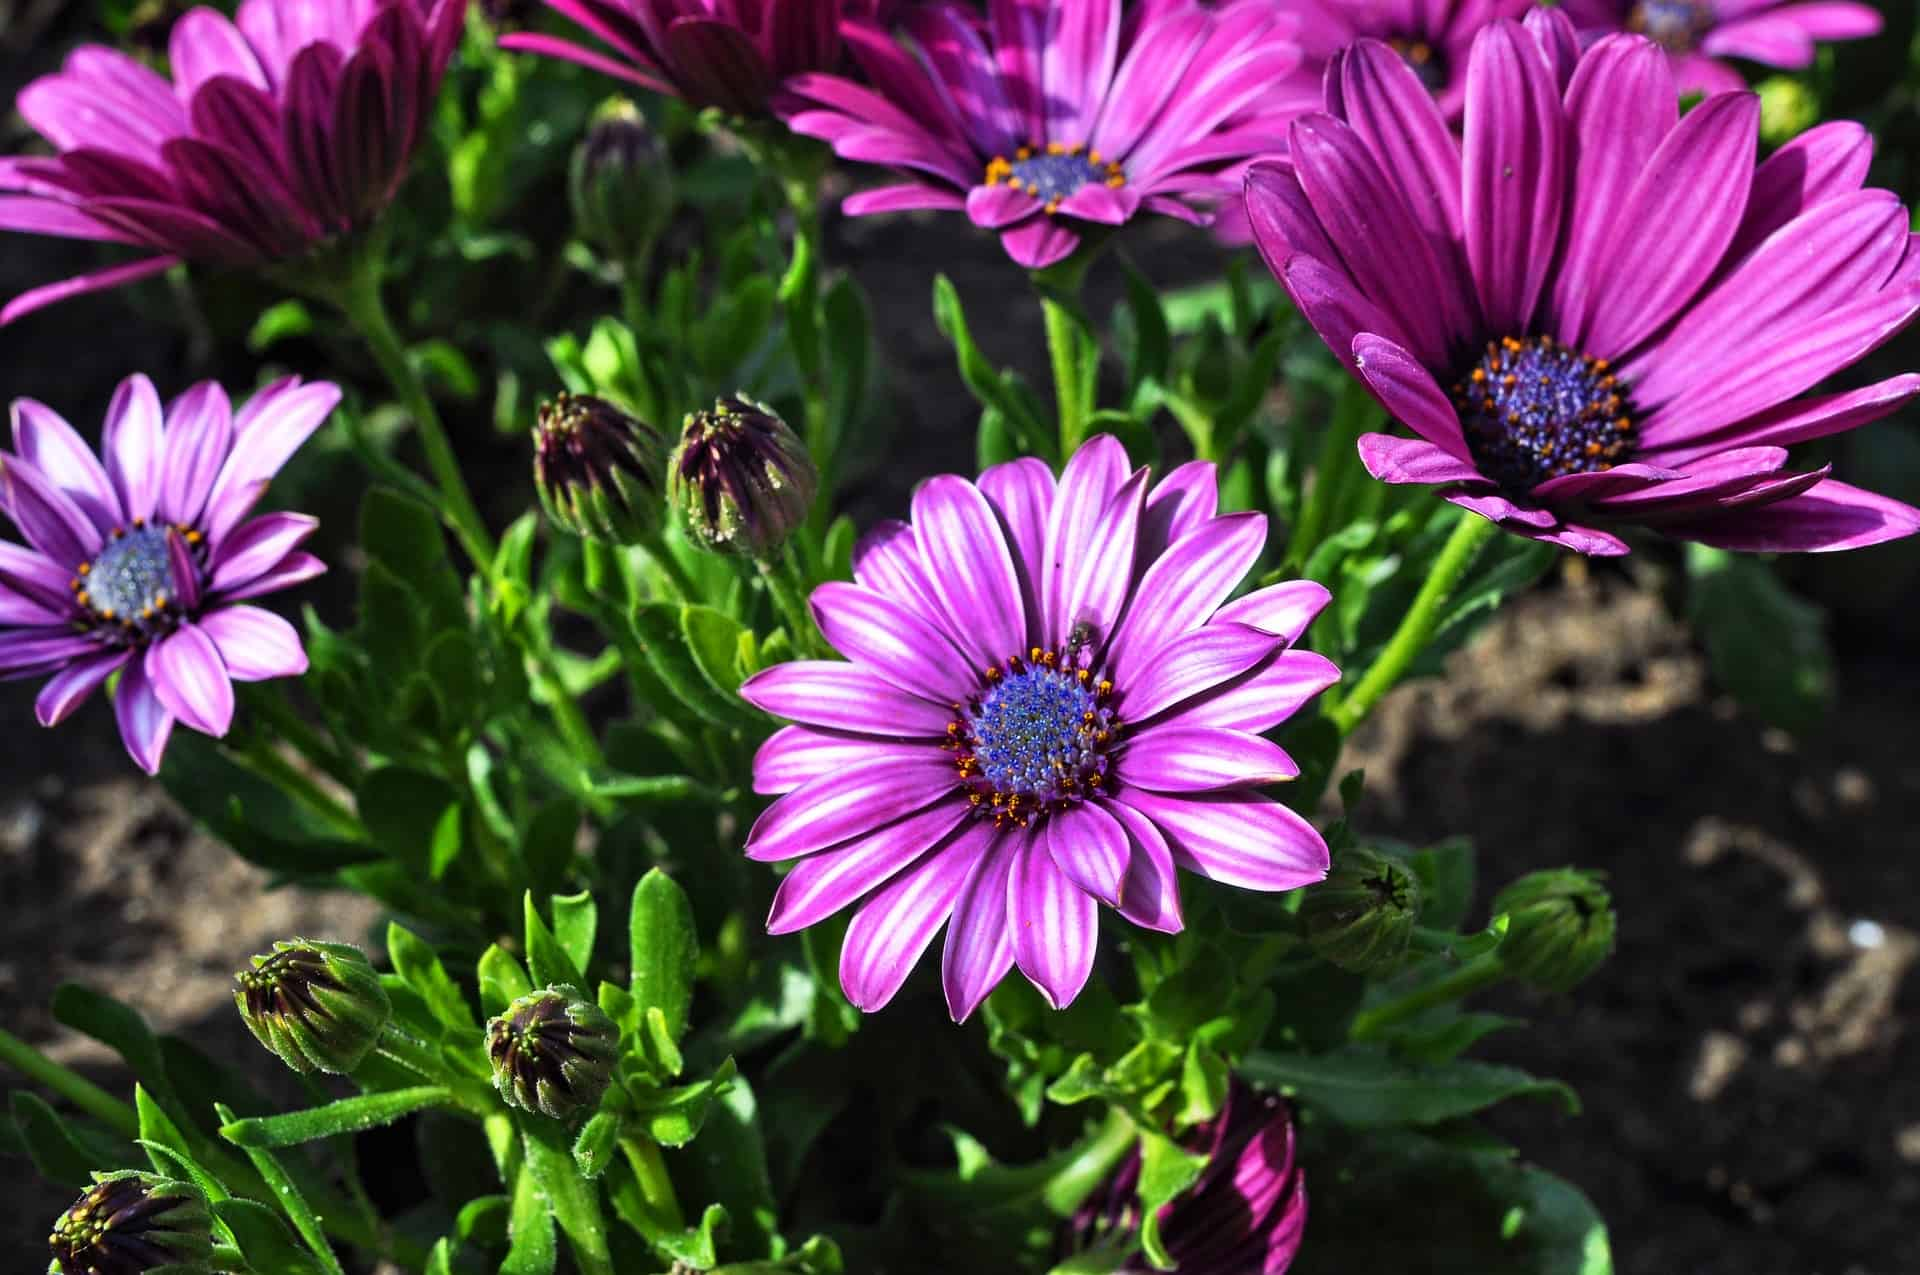 How to Grow Blue Eyed Daisies